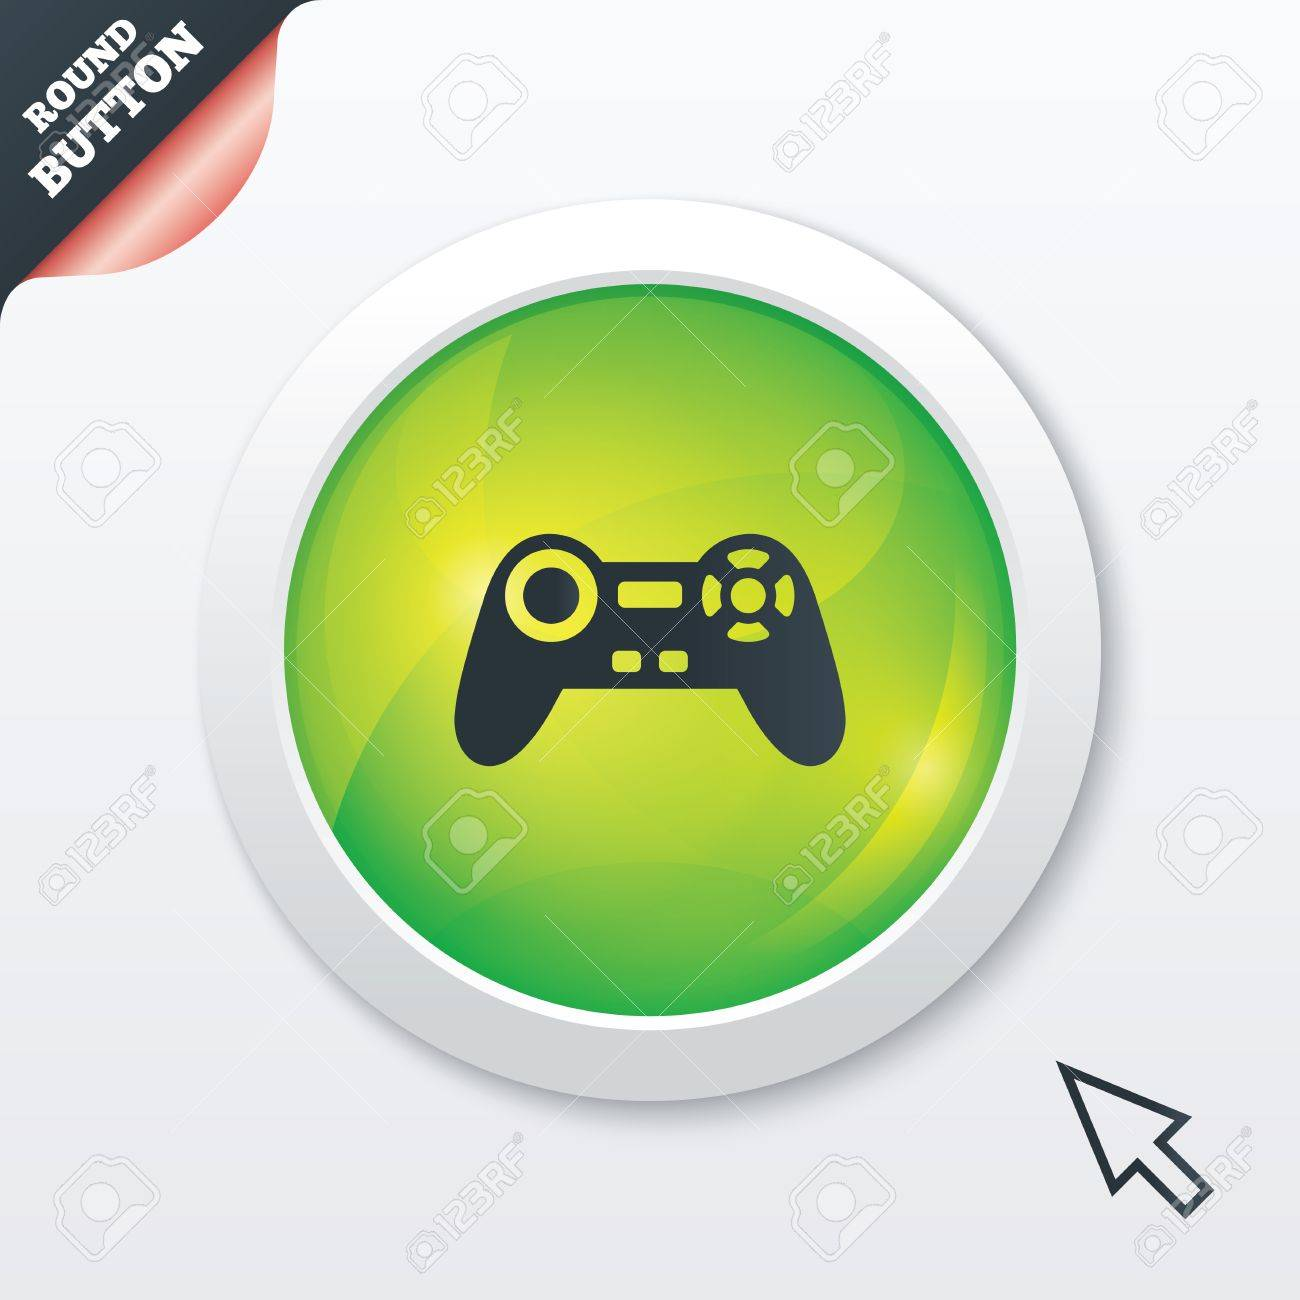 Joystick sign icon  Video game symbol  Green shiny button  Modern